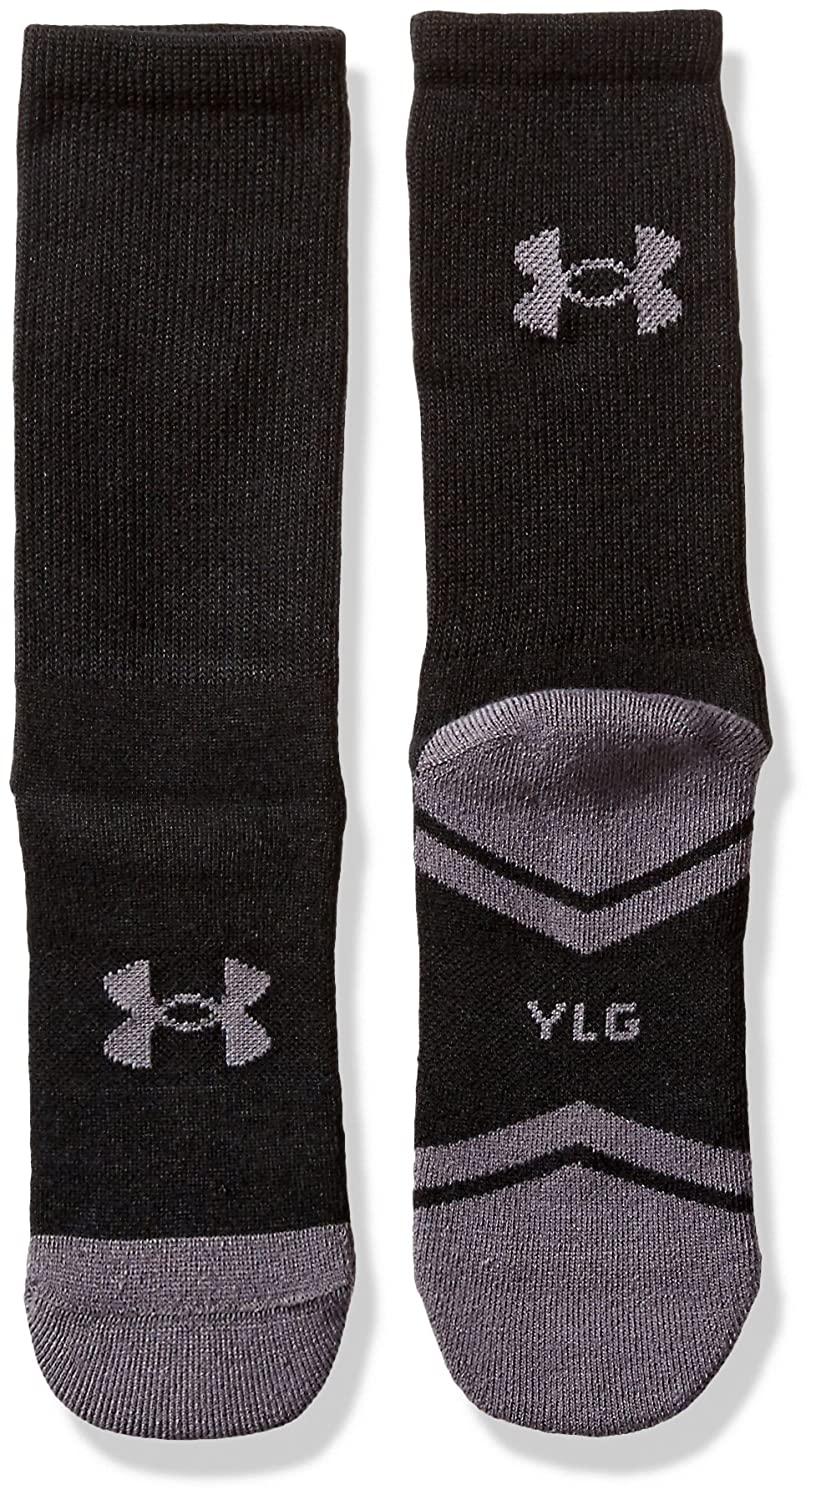 White//Graphite Youth Large Under Armour Socks U292B 6-Pack Under Armour Youth Resistor 3.0 Crew